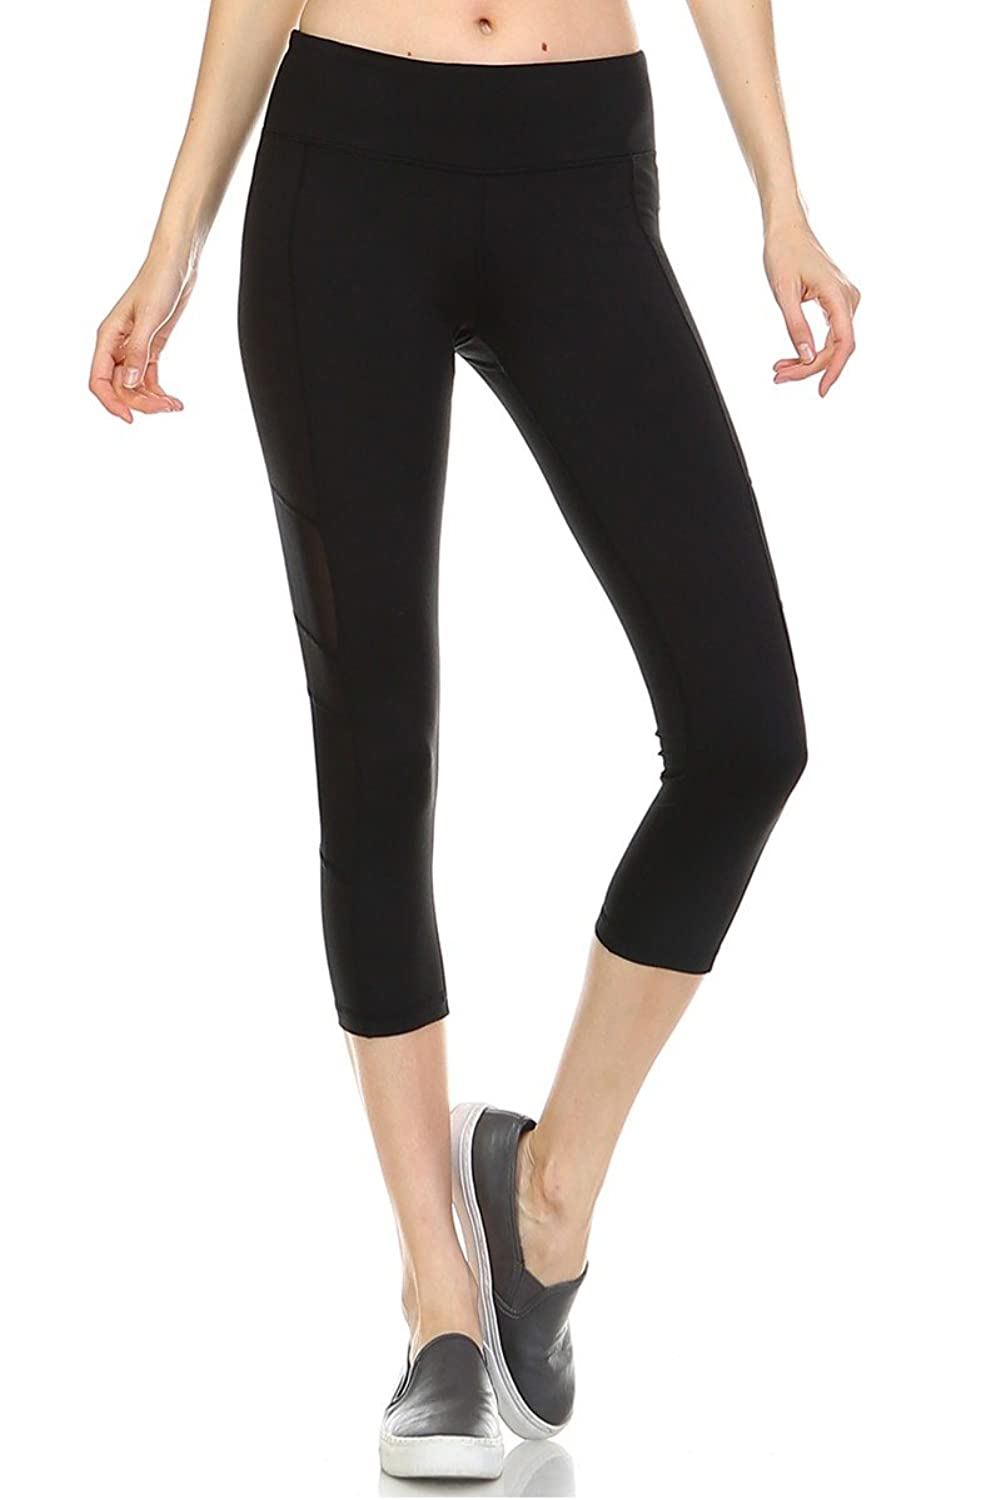 12 Ami Assorted High Waist Stretch Capri Leggings